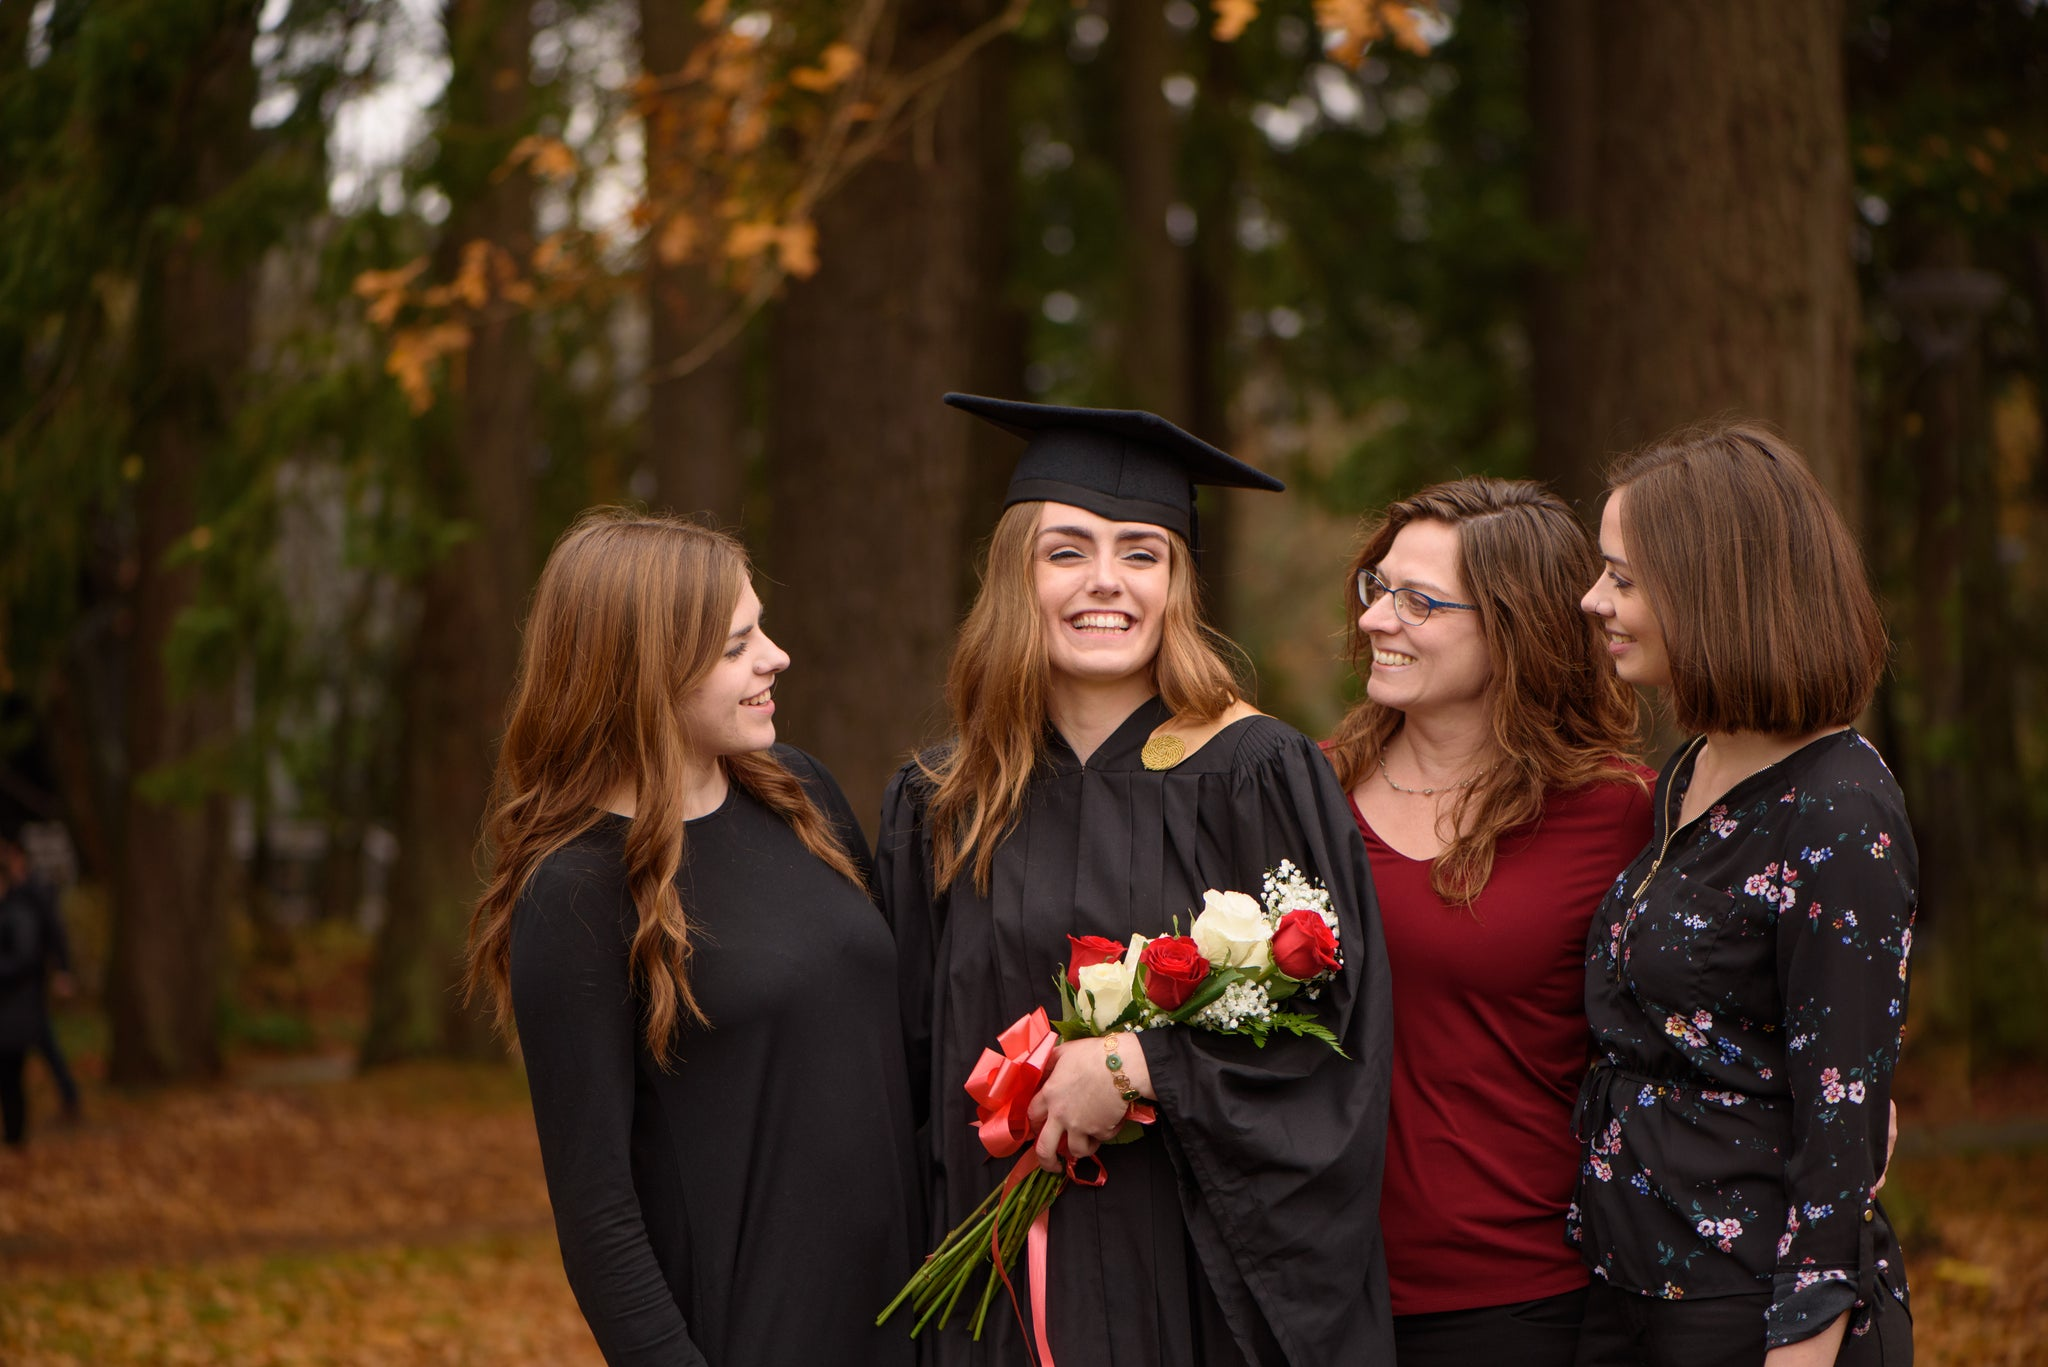 UVIC Summer 2020 Grad Photo Sessions (June 8, 9, 10, 11, 12)